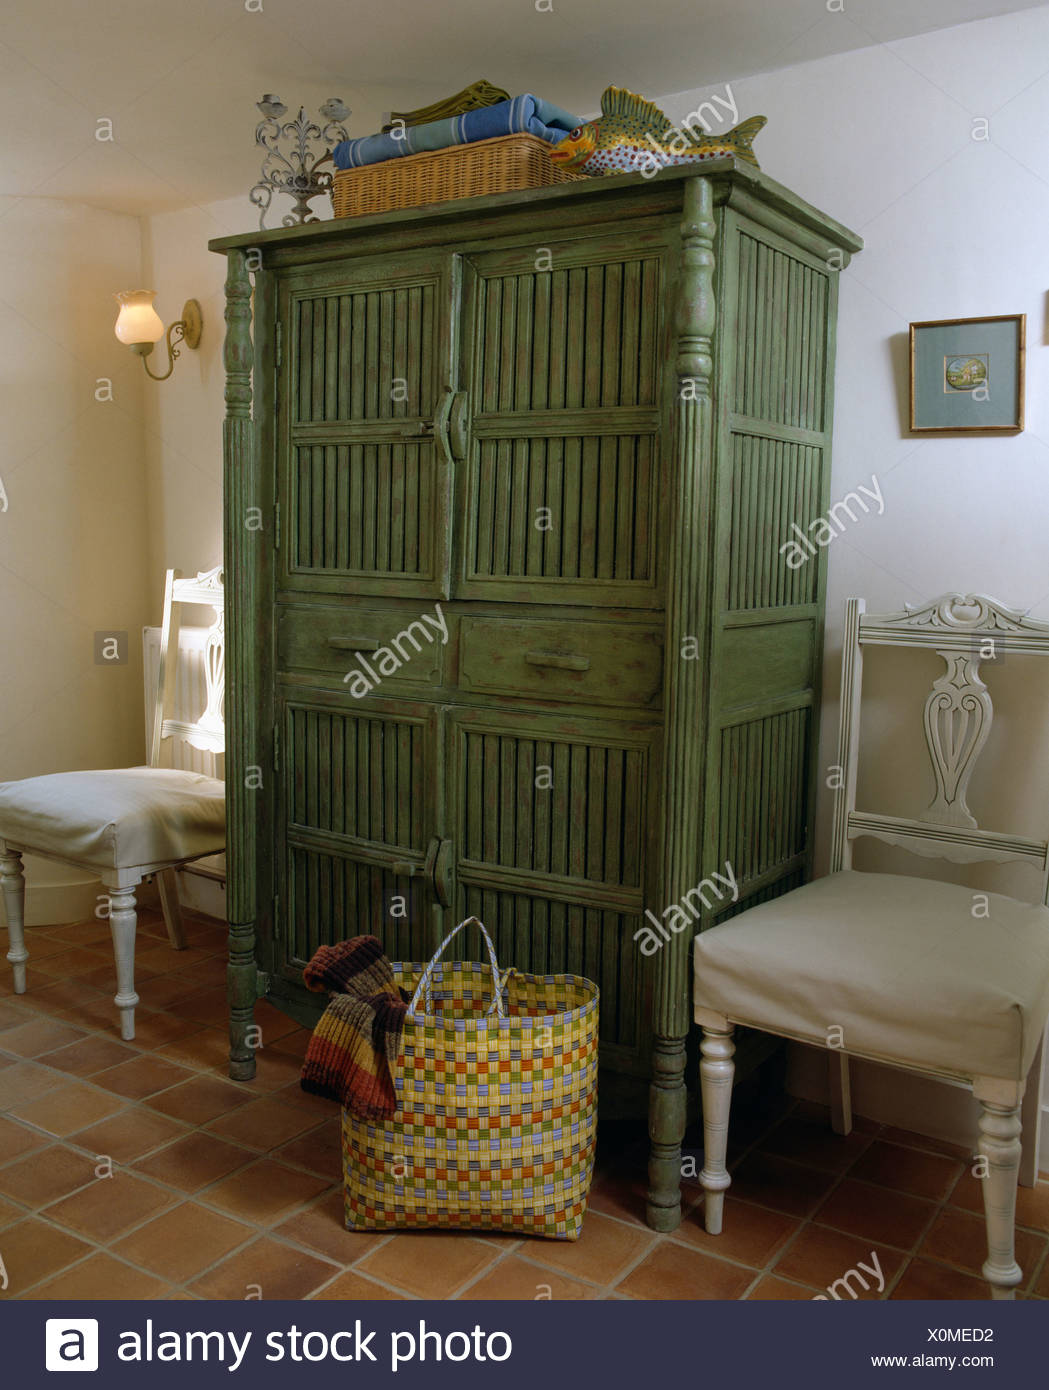 White Painted Chairs With Linen Loose Covers On Either Side Of Green Cupboard In Cottage Dining Room